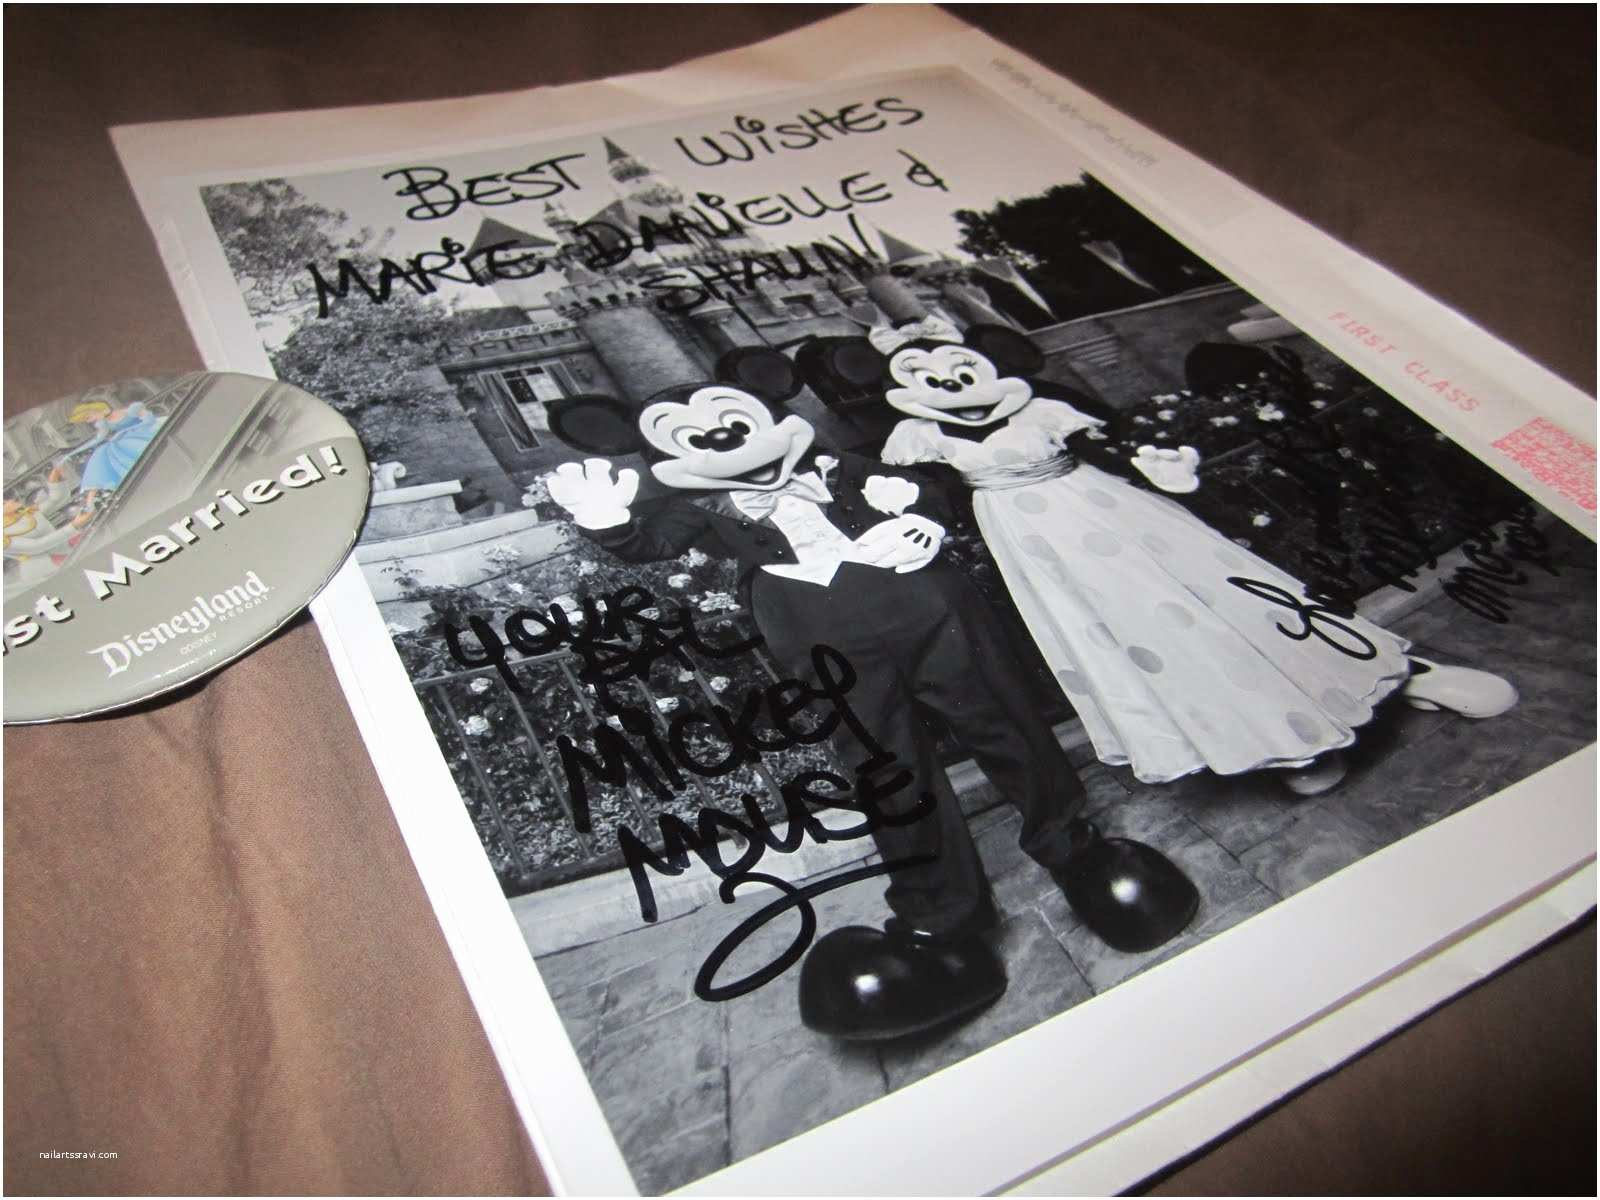 Mickey Mouse Wedding Invitations This is What Happens when You Invite Kate and Wills or